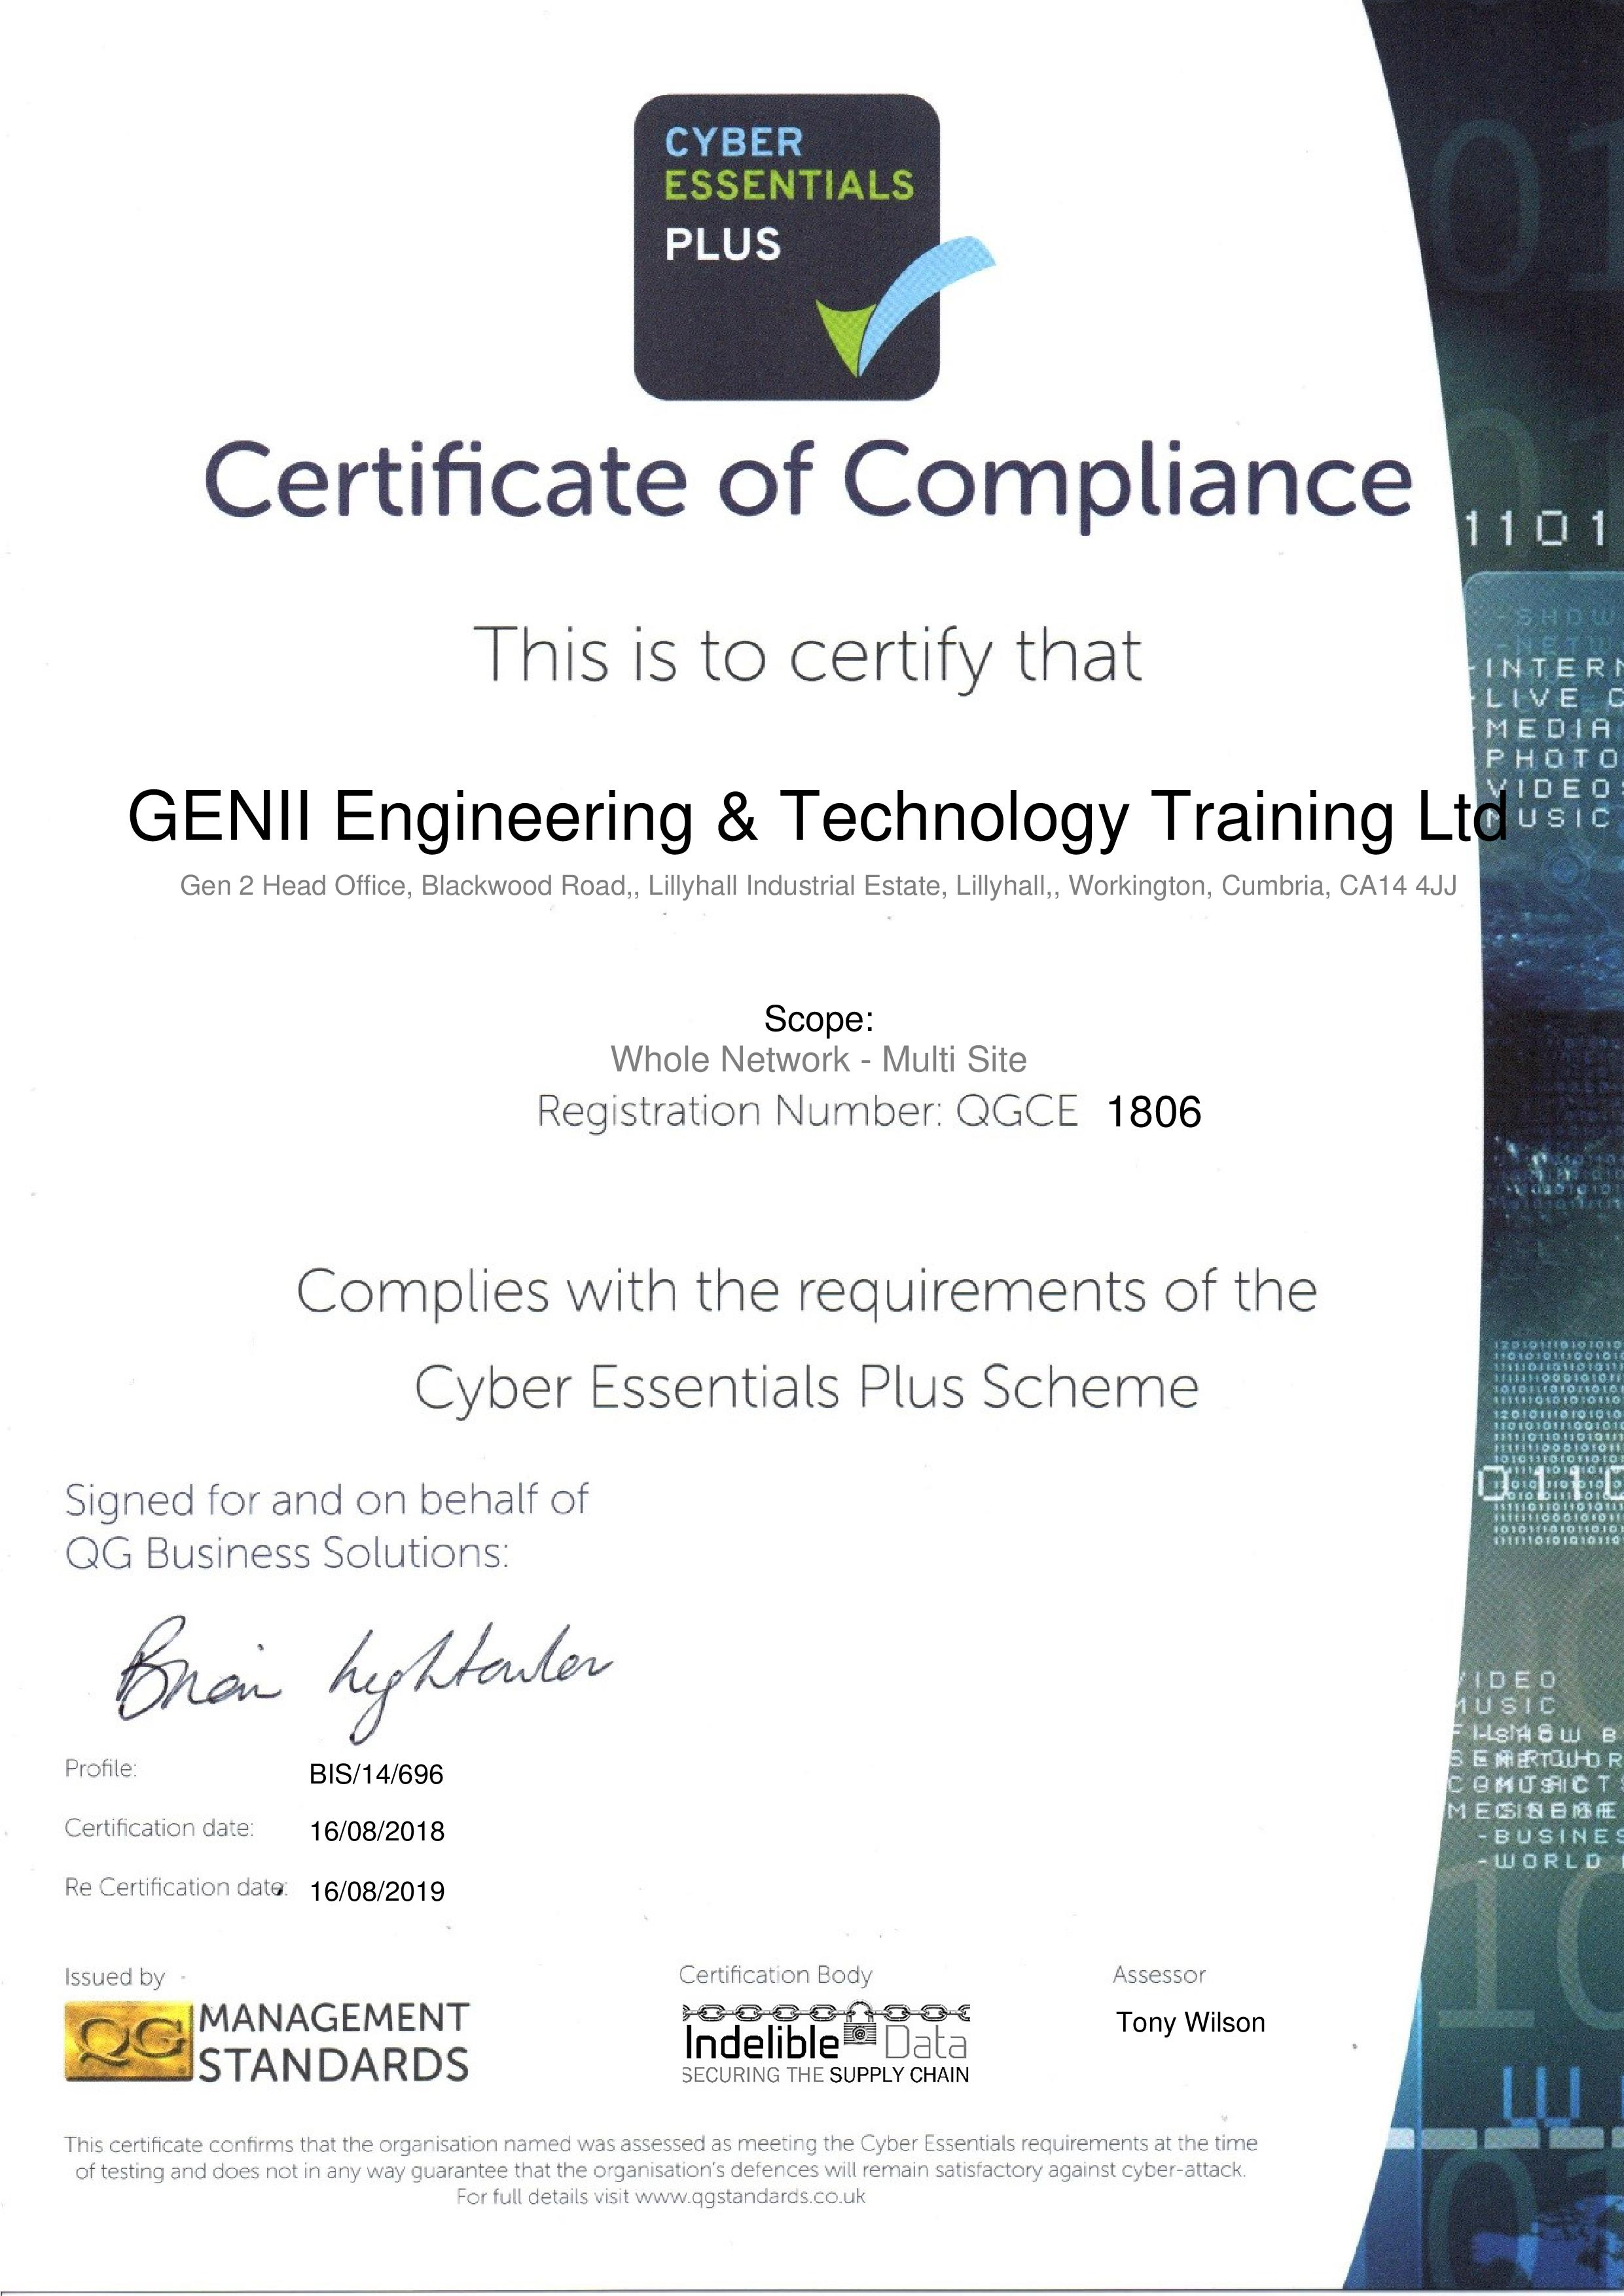 QGCE1806 GENII Engineering & Technology Training Ltd